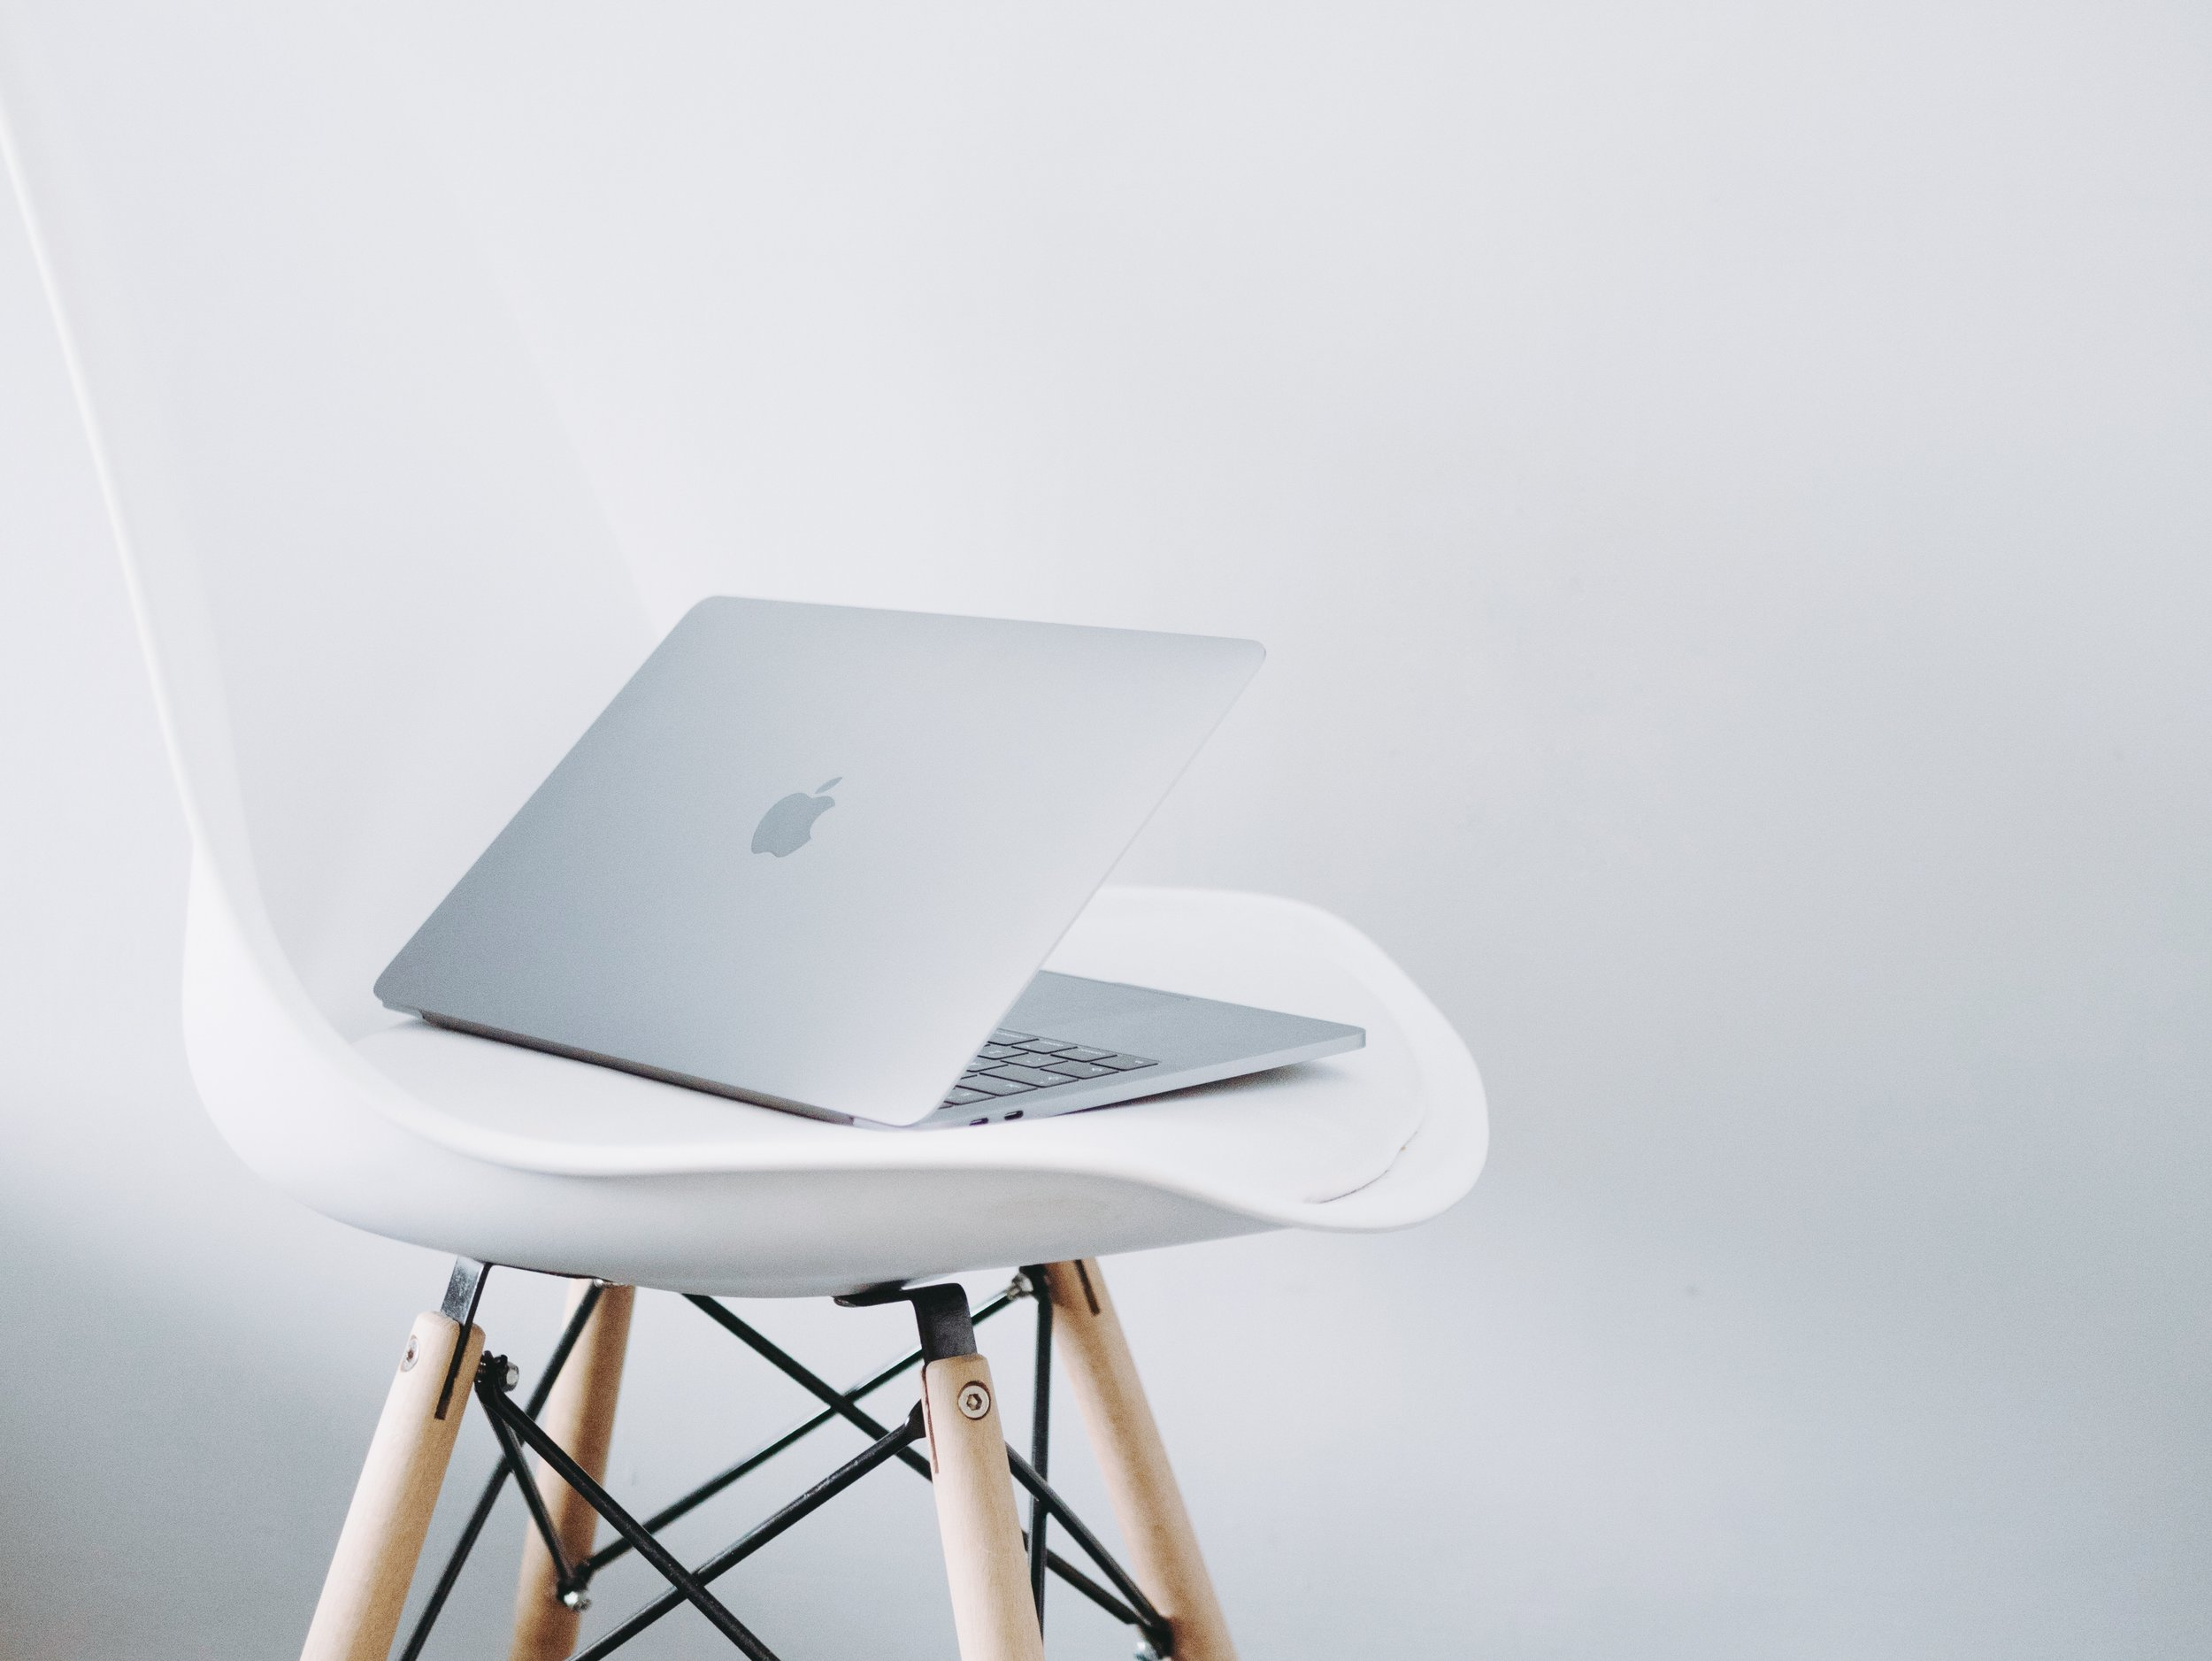 Apple MacBook on a white stool